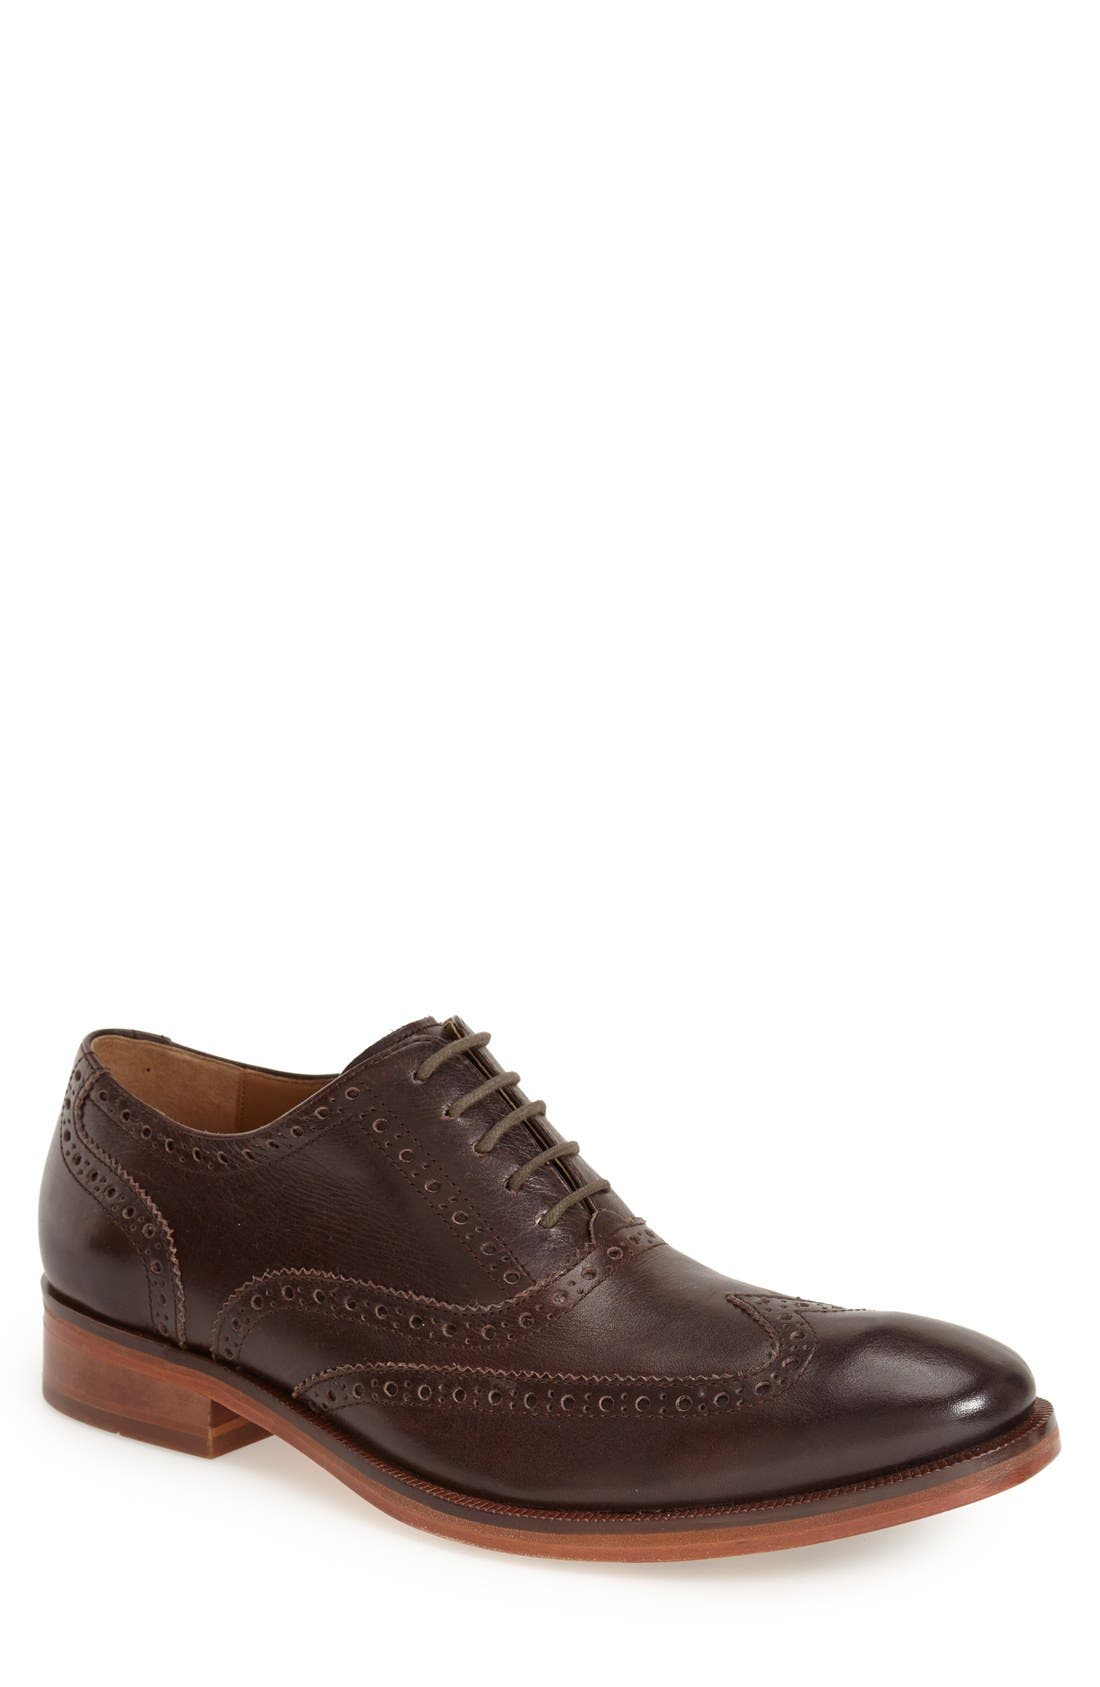 Alternate Image 1 Selected - Cole Haan 'Colton' Wingtip Oxford